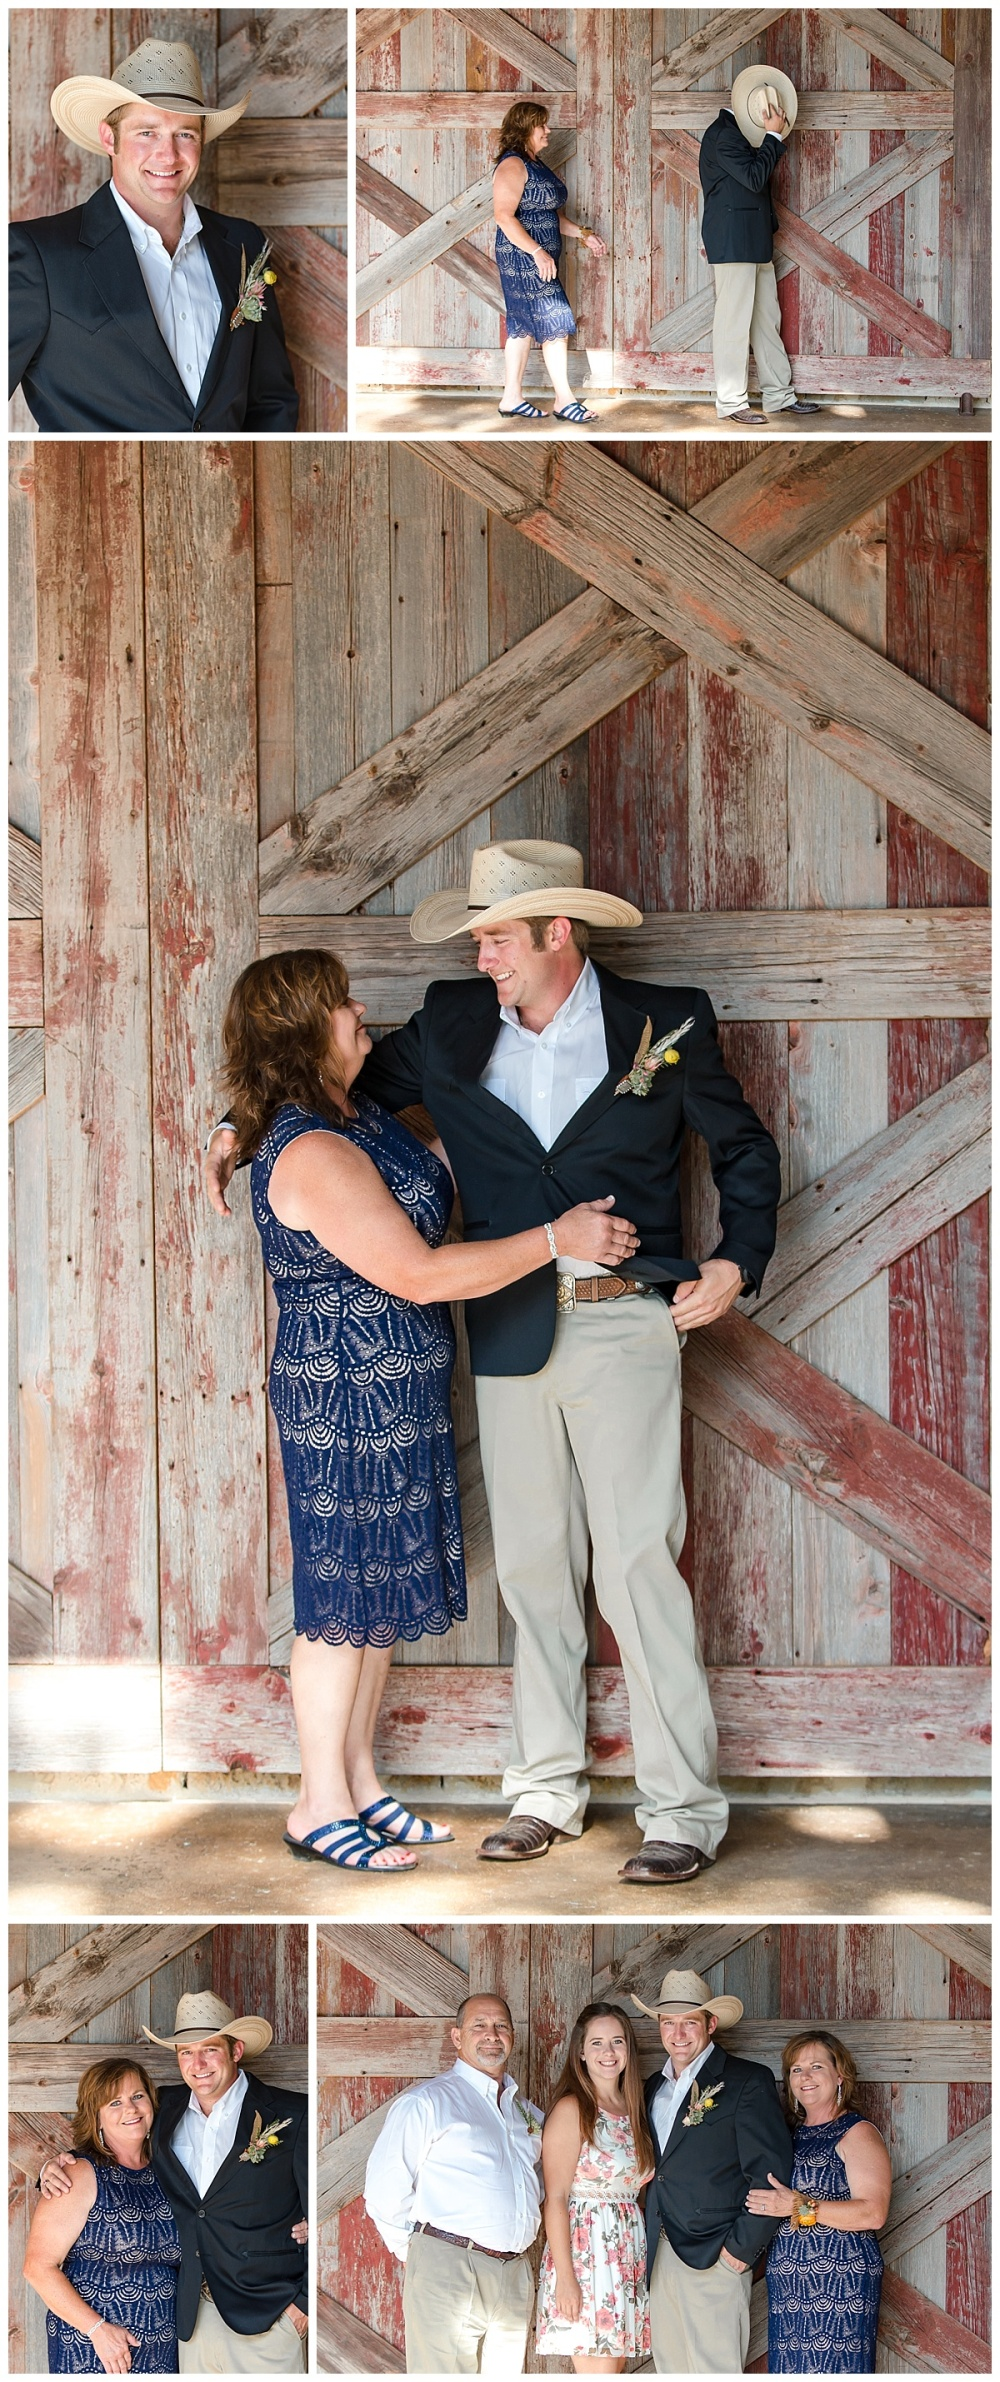 Texas-Wedding-Photographer-Braded-T-Ranch-Kendalia-Bride-Groom-Southwestern-Style-Carly-Barton-Photography-Vogt_0016.jpg